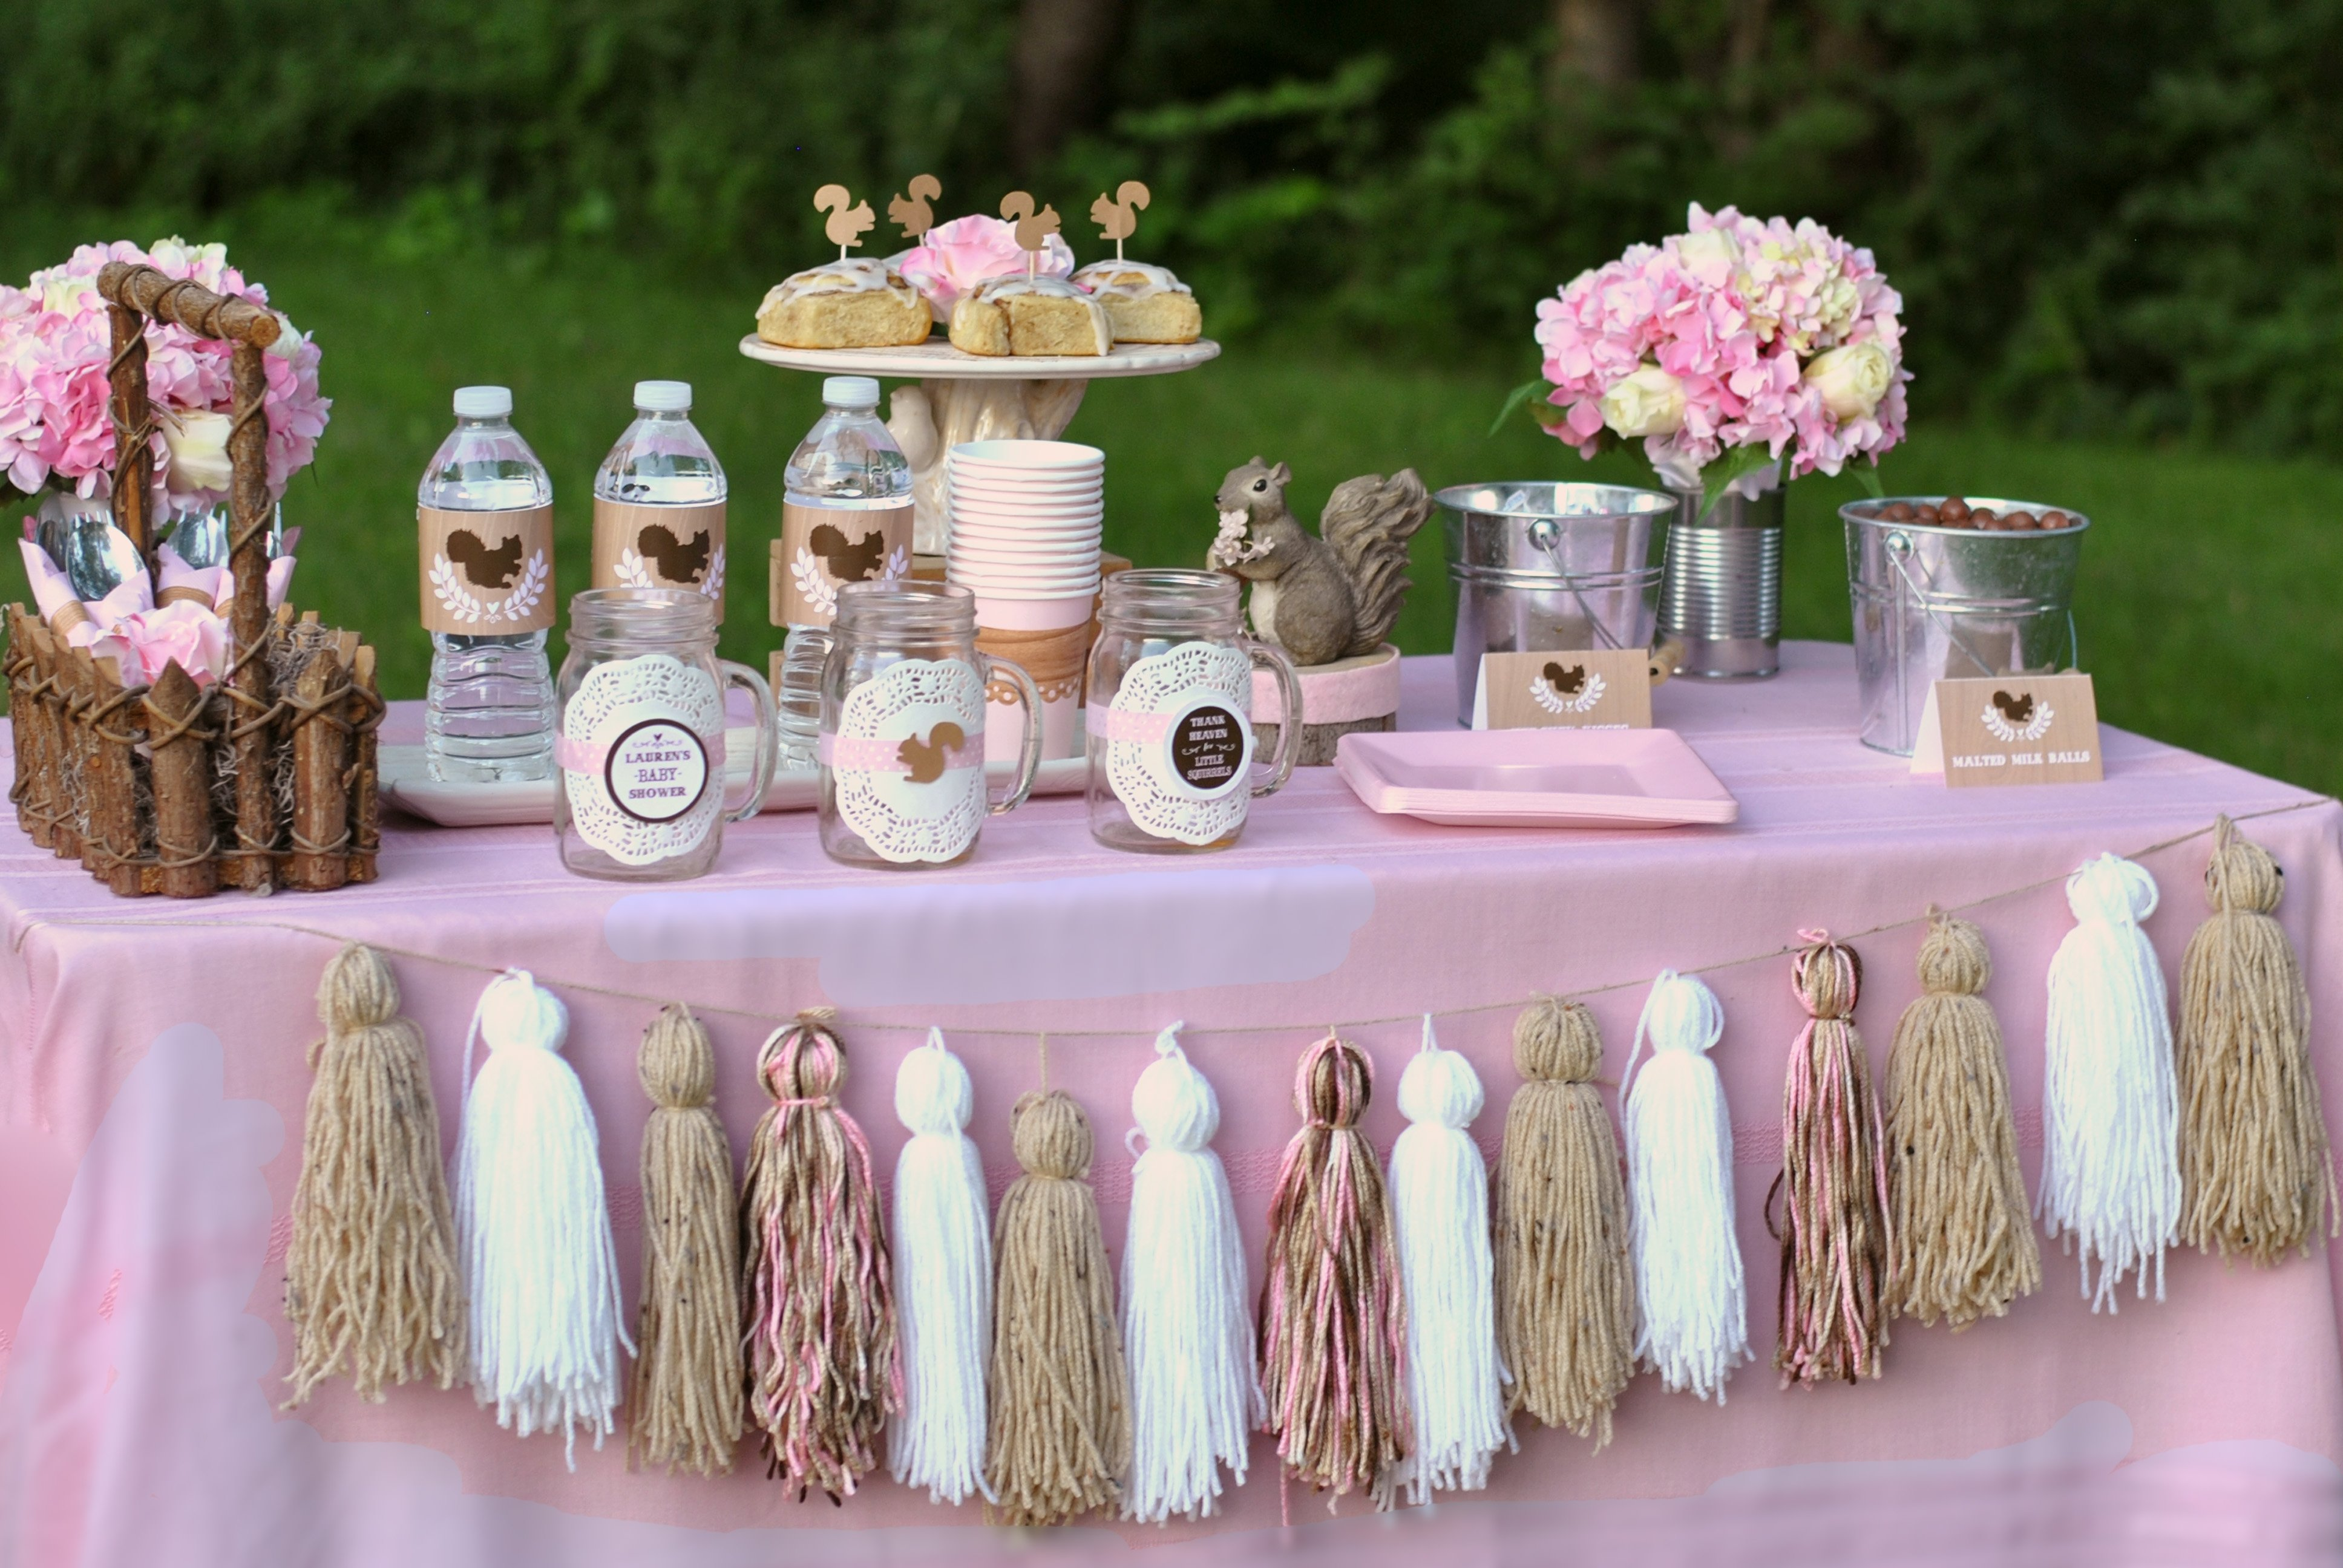 10 Unique Baby Shower Girl Decoration Ideas baby shower theme ideas for girl omega center ideas for baby 4 2021